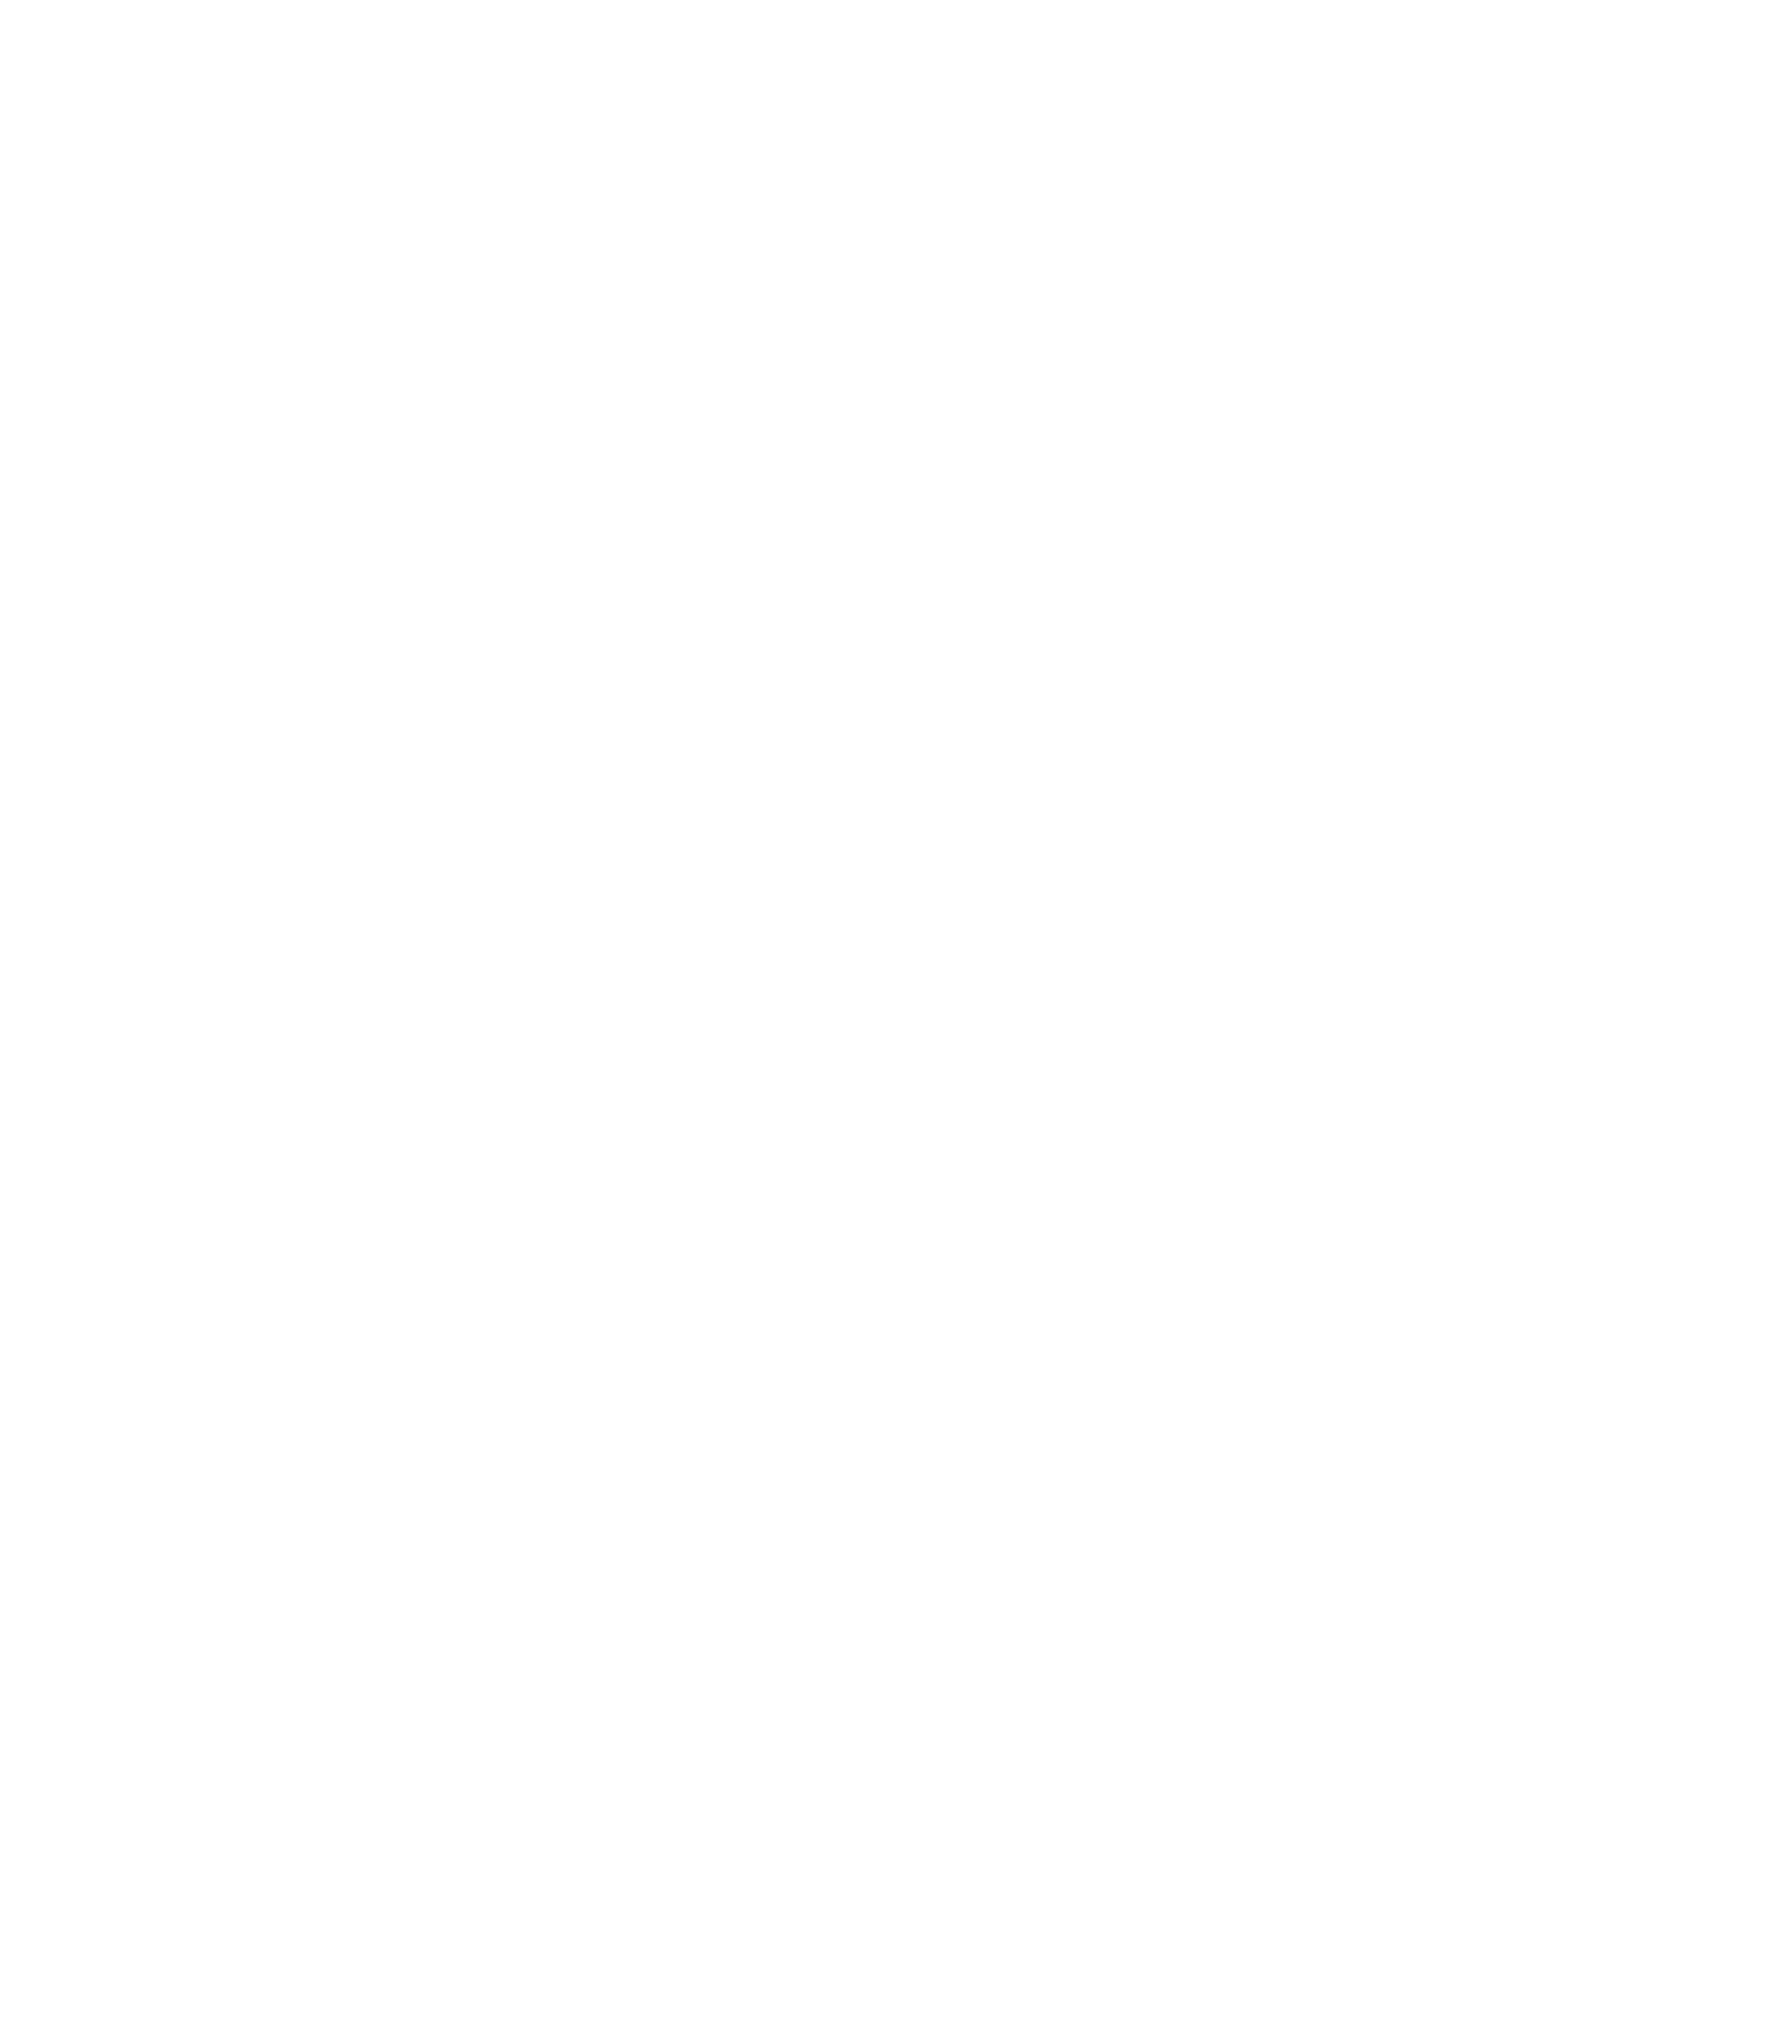 Bold-w.png